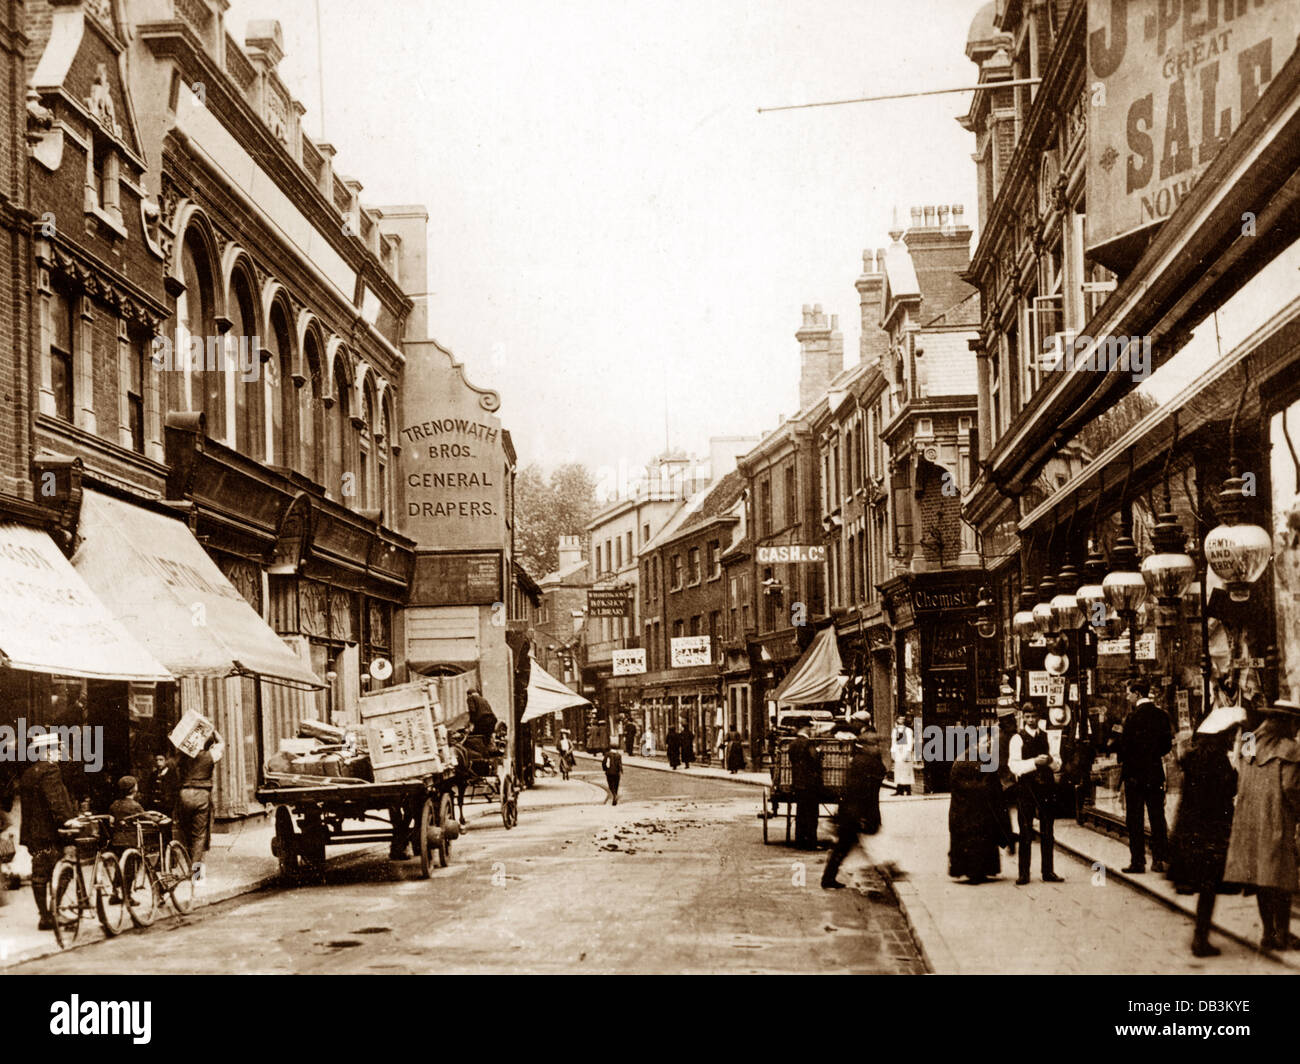 King's Lynn High Street early 1900s - Stock Image